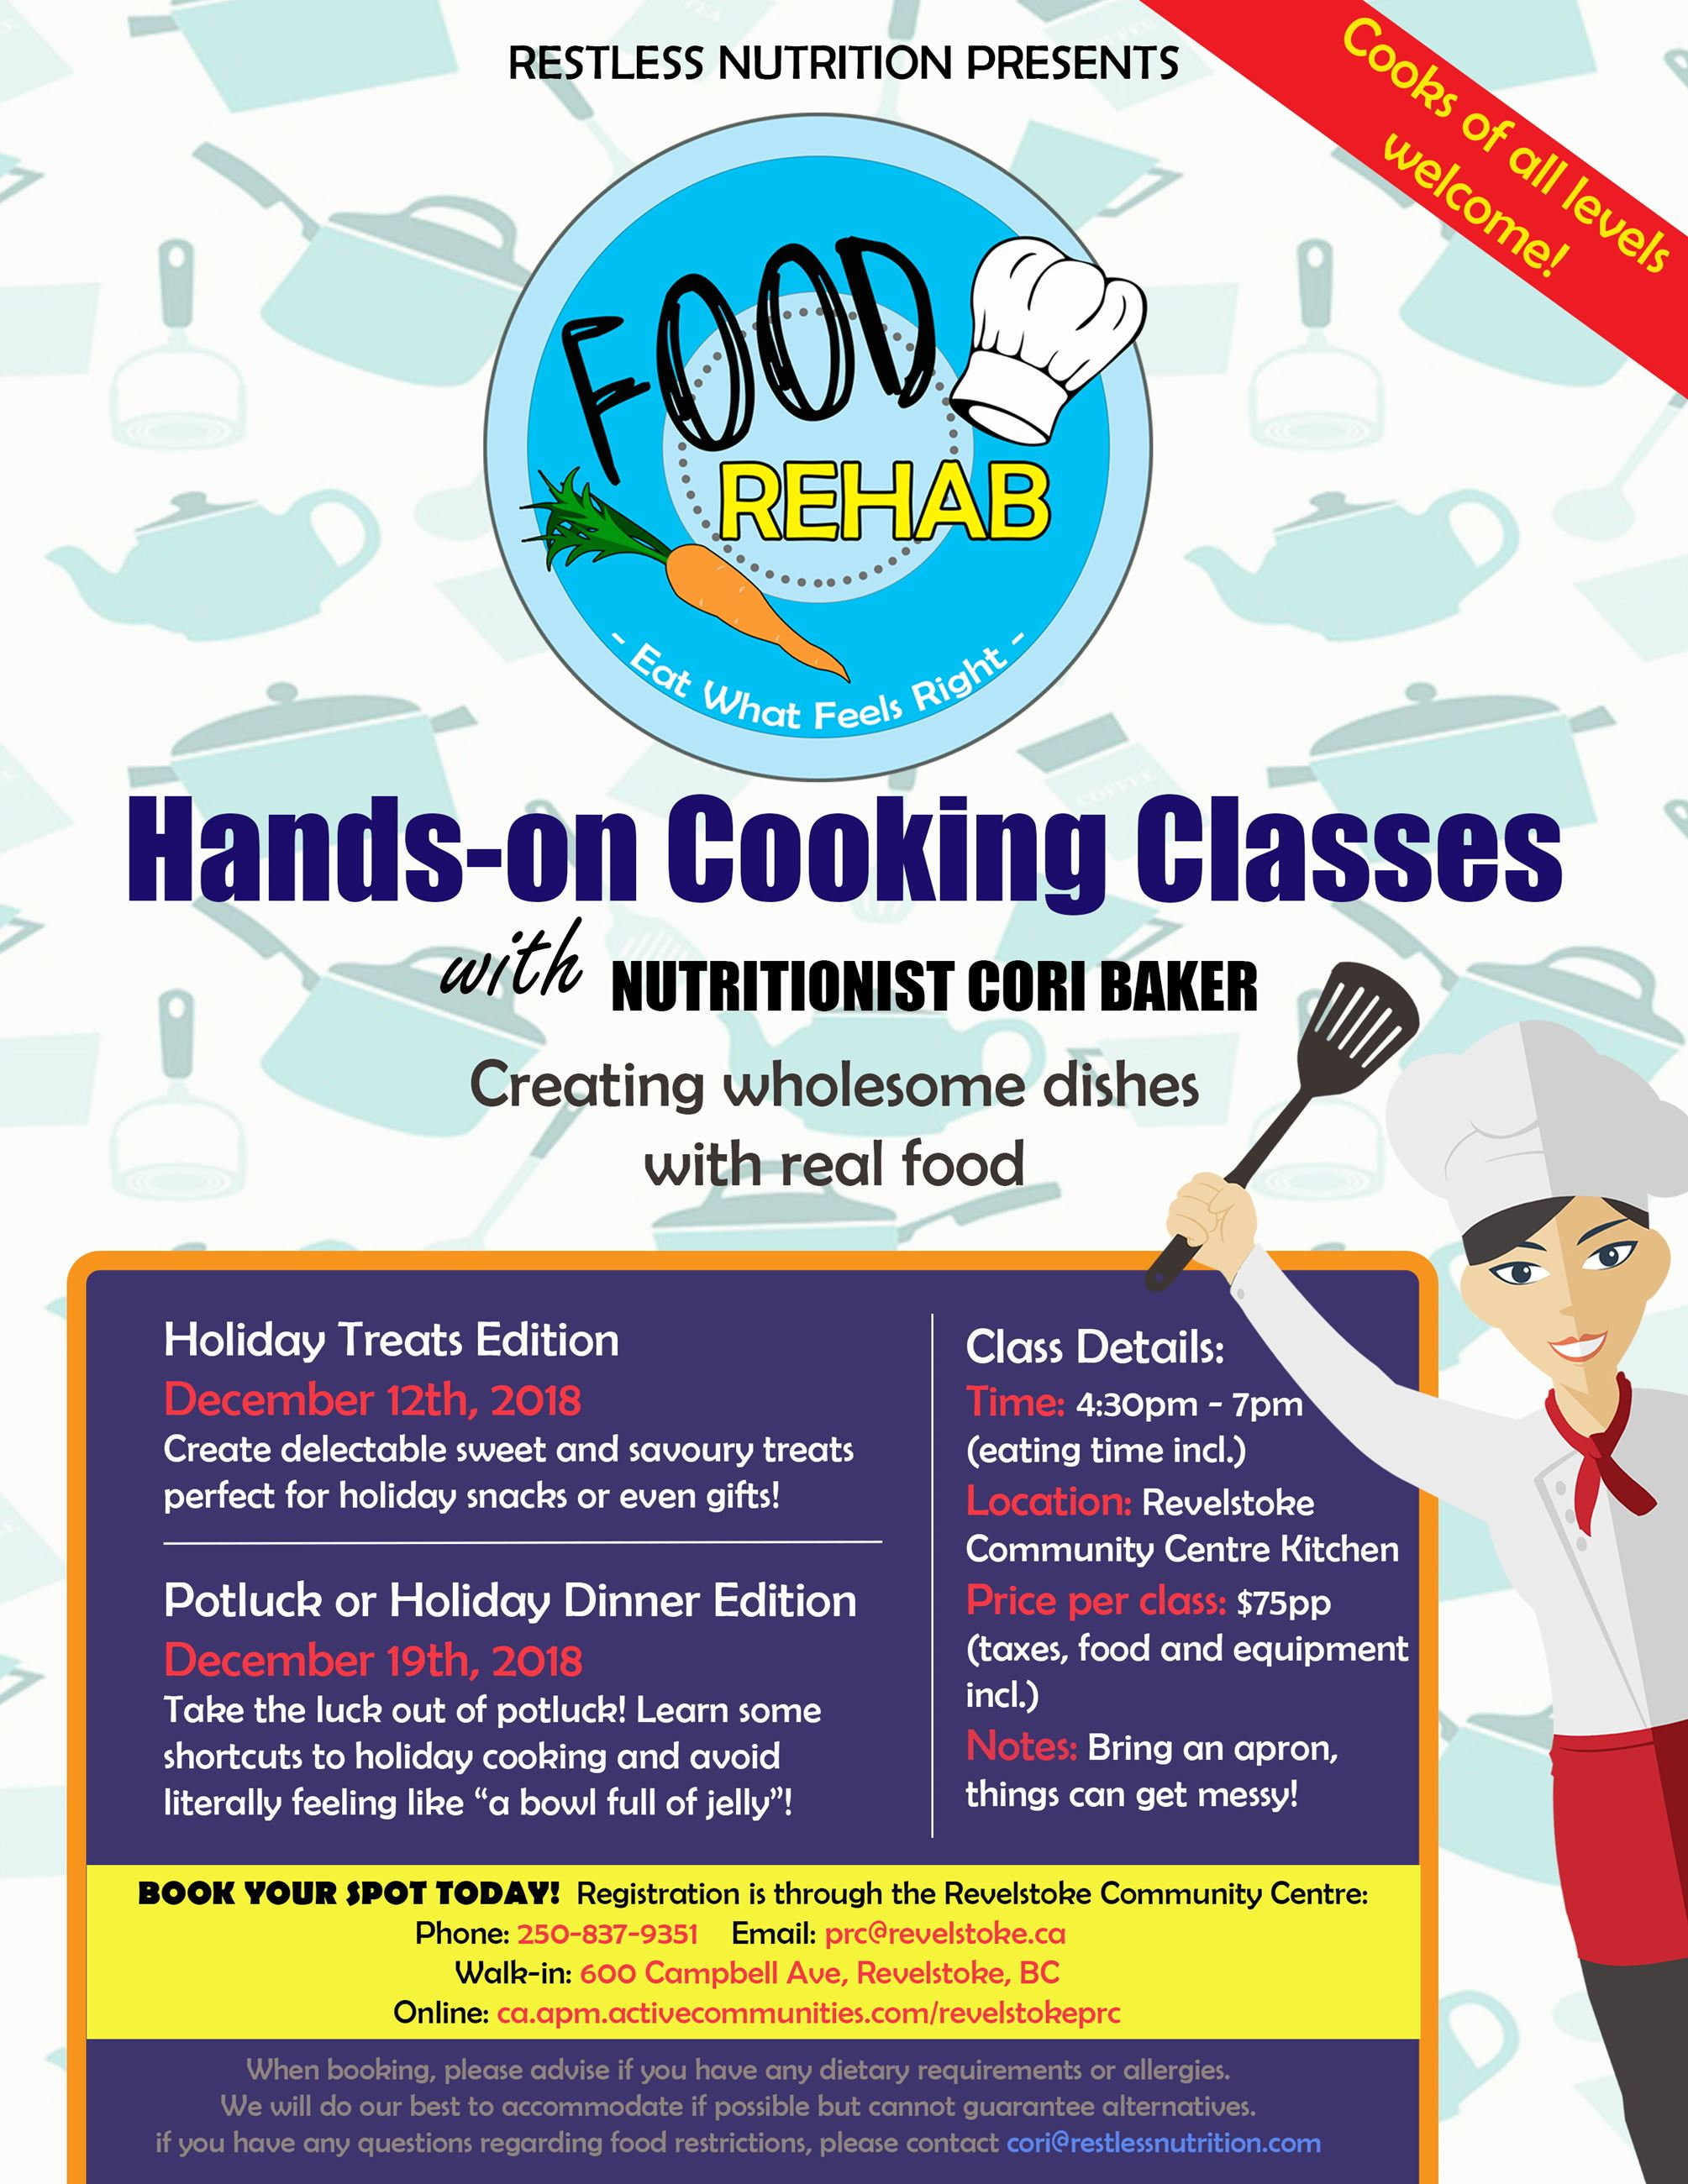 Hands-on Cooking Classes - Potluck or Holiday Dinner Edition @ Revelstoke Community Centre |  |  |